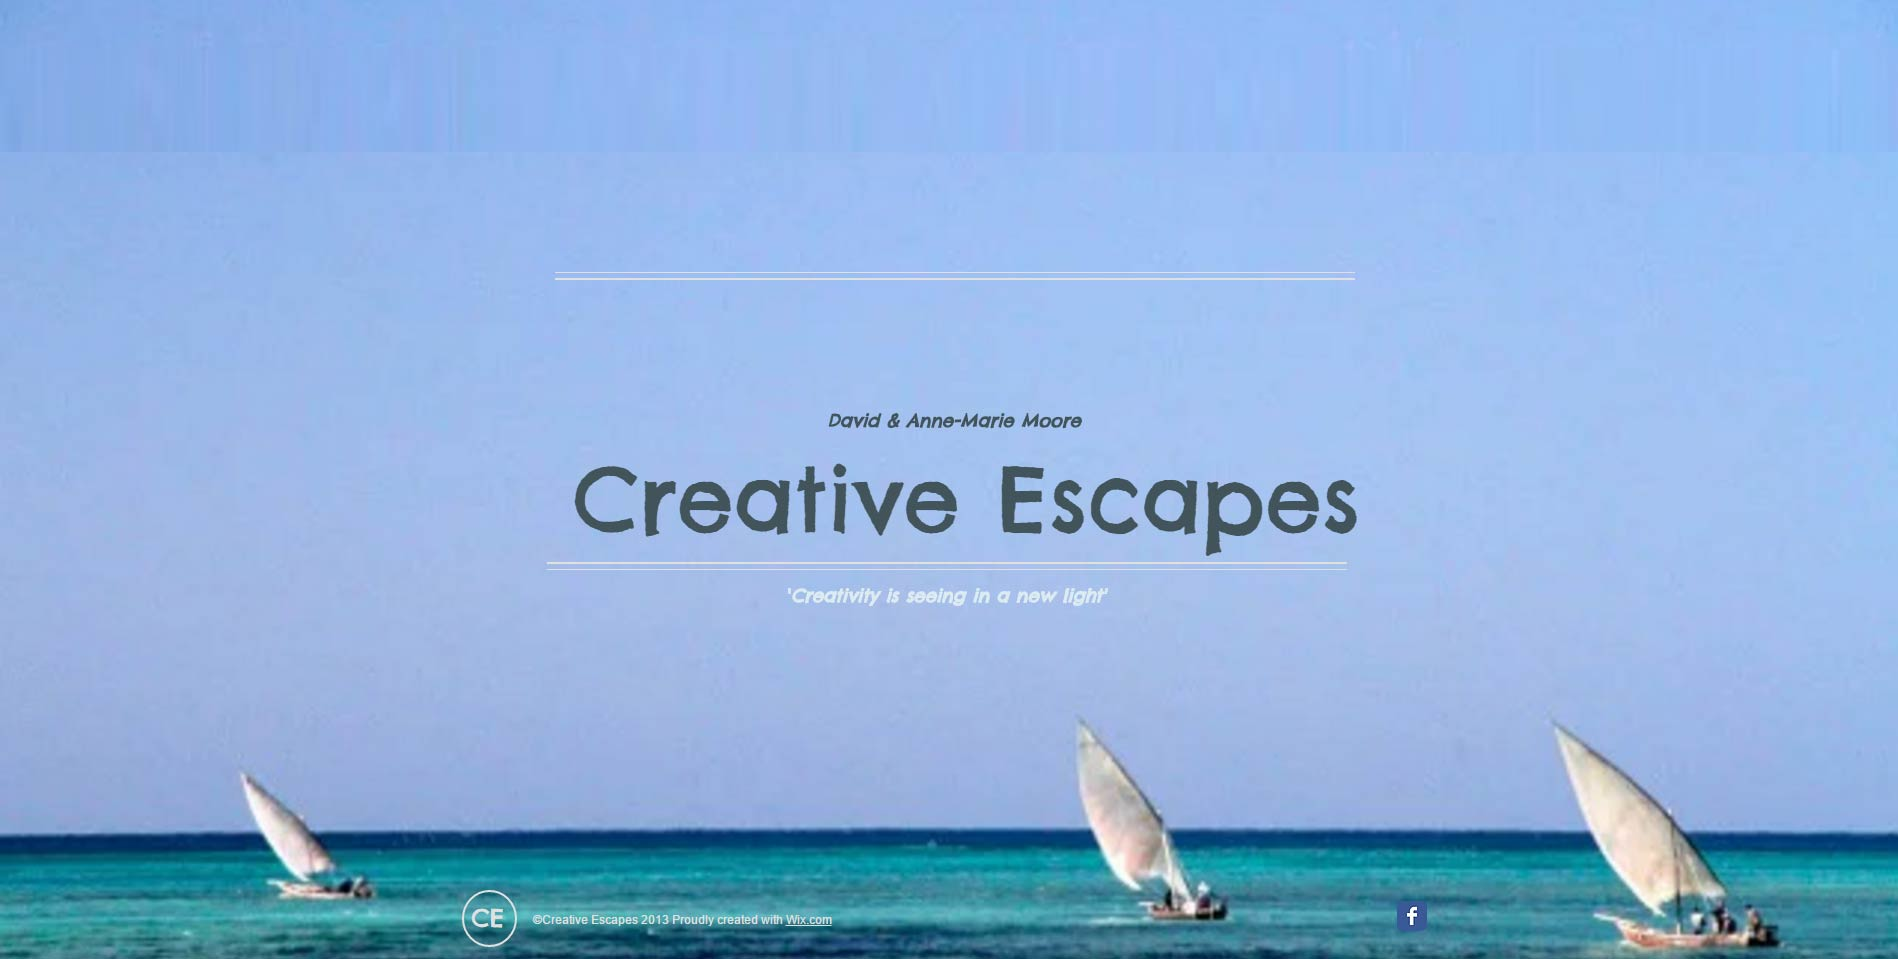 Creative Escapes